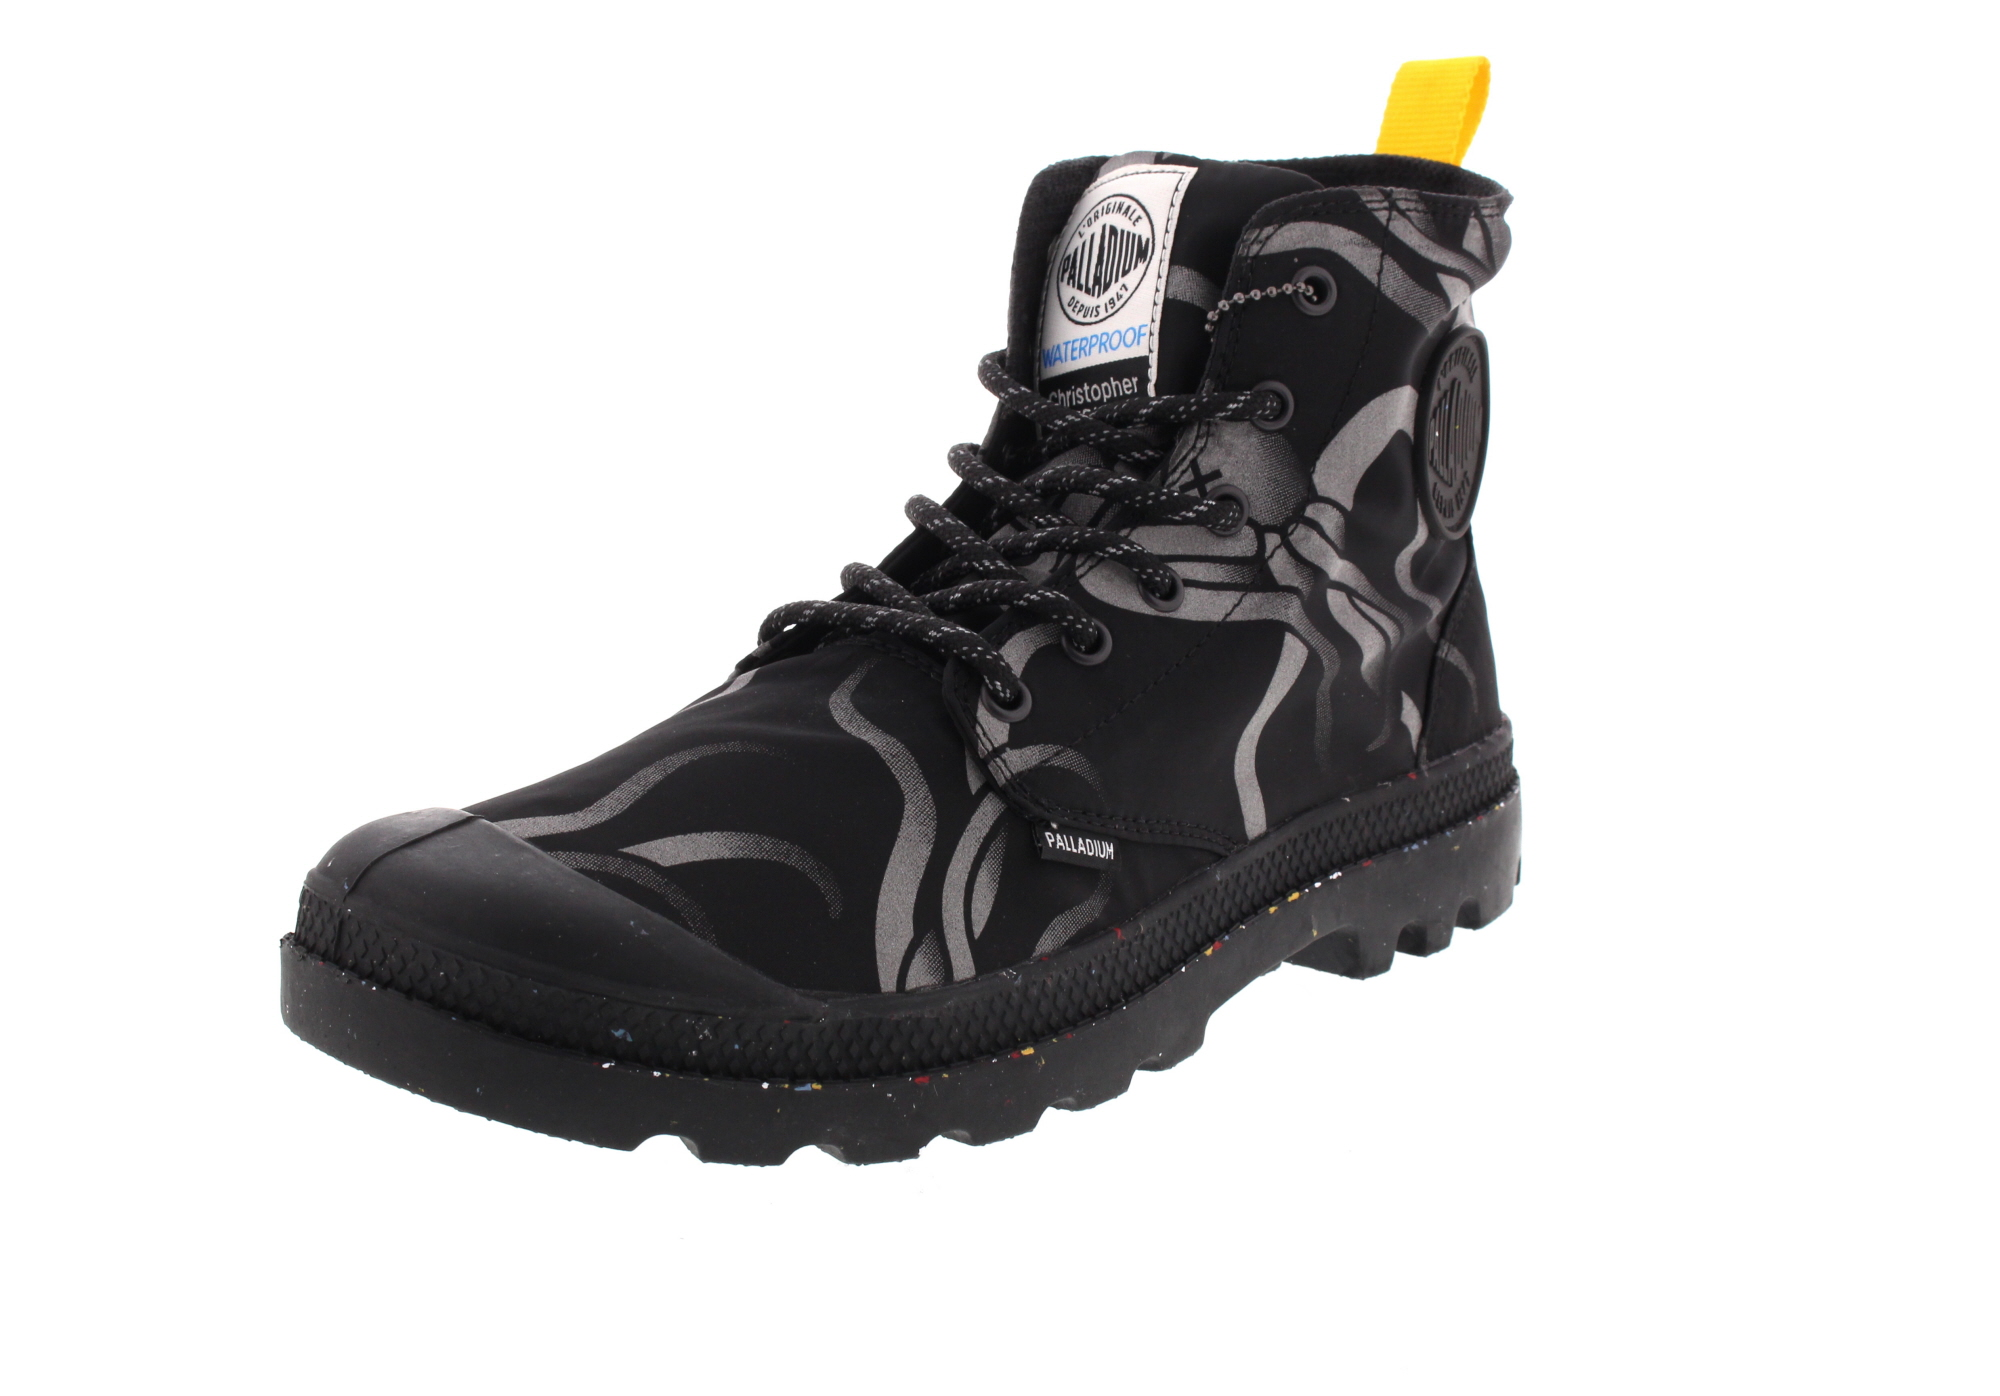 PALLADIUM - PAMPA HI NIGHT SQUID WATERPROOF - jet black0-6823